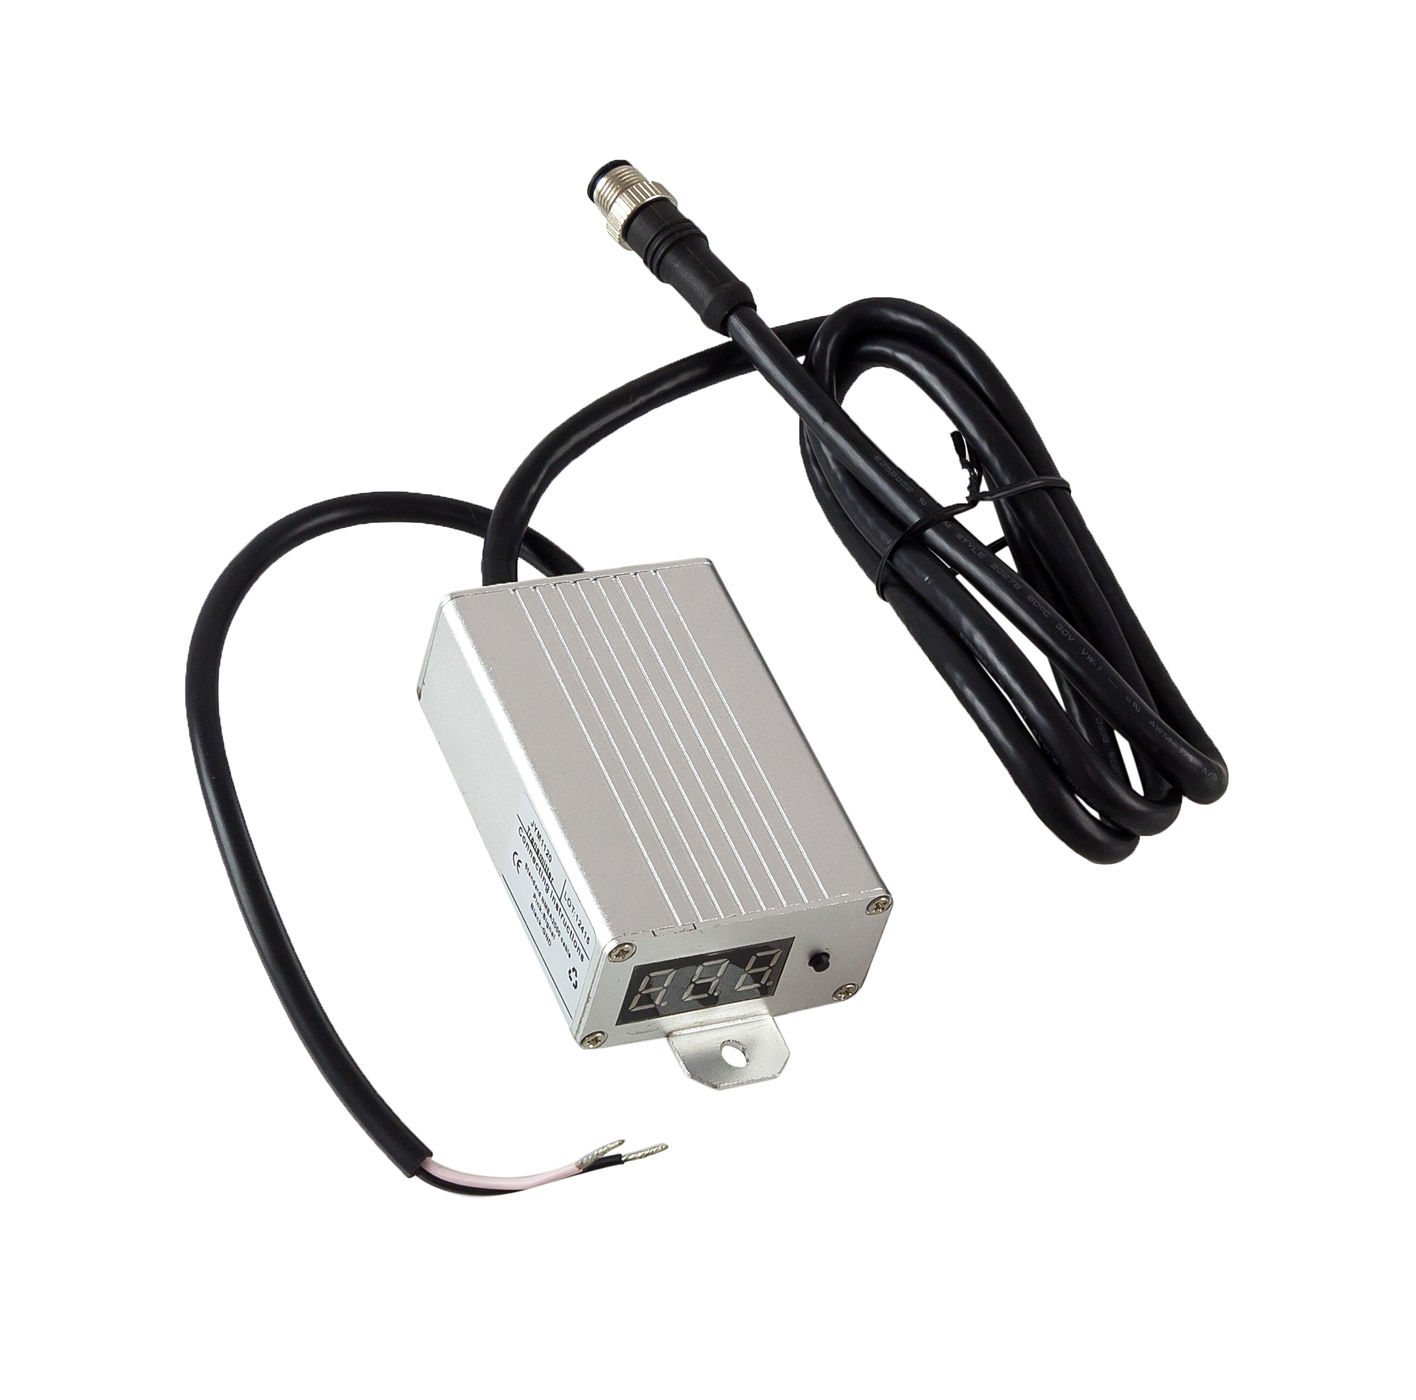 Signal Converter For Devices Nmea2000 Jym1120